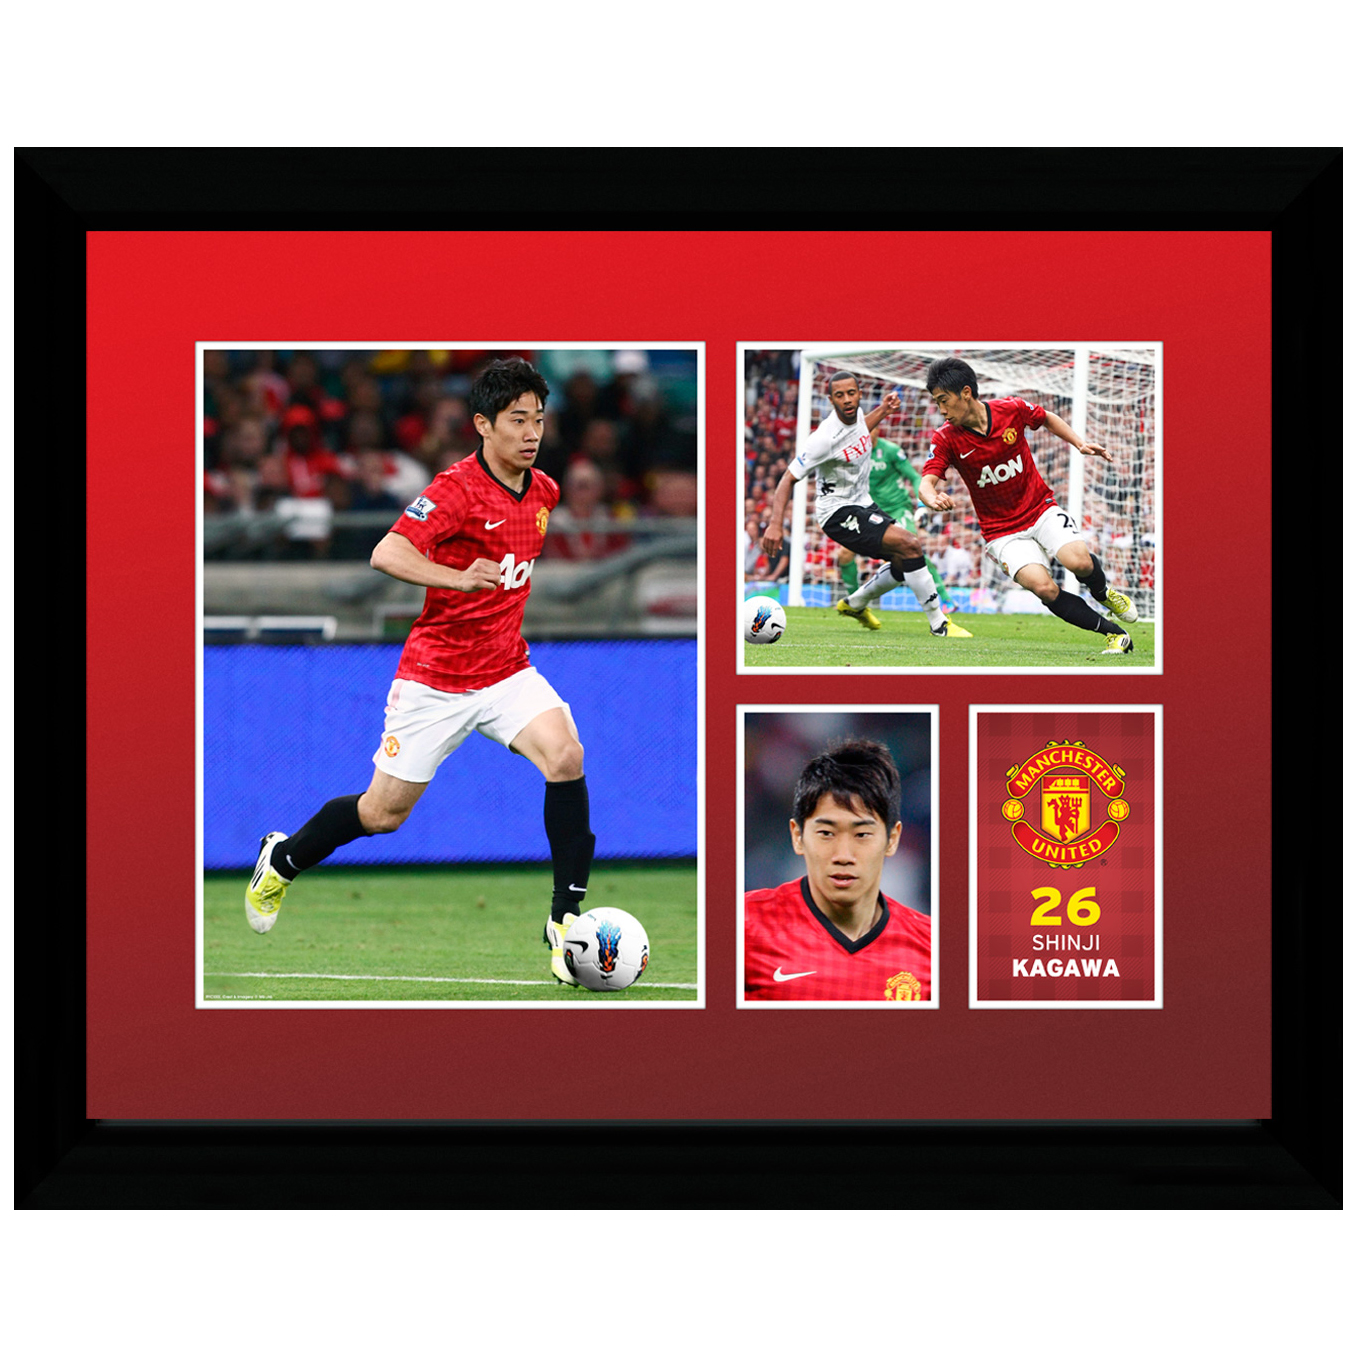 Manchester United 2012/13 Kagawa Framed Print - 12 x 16 Inch